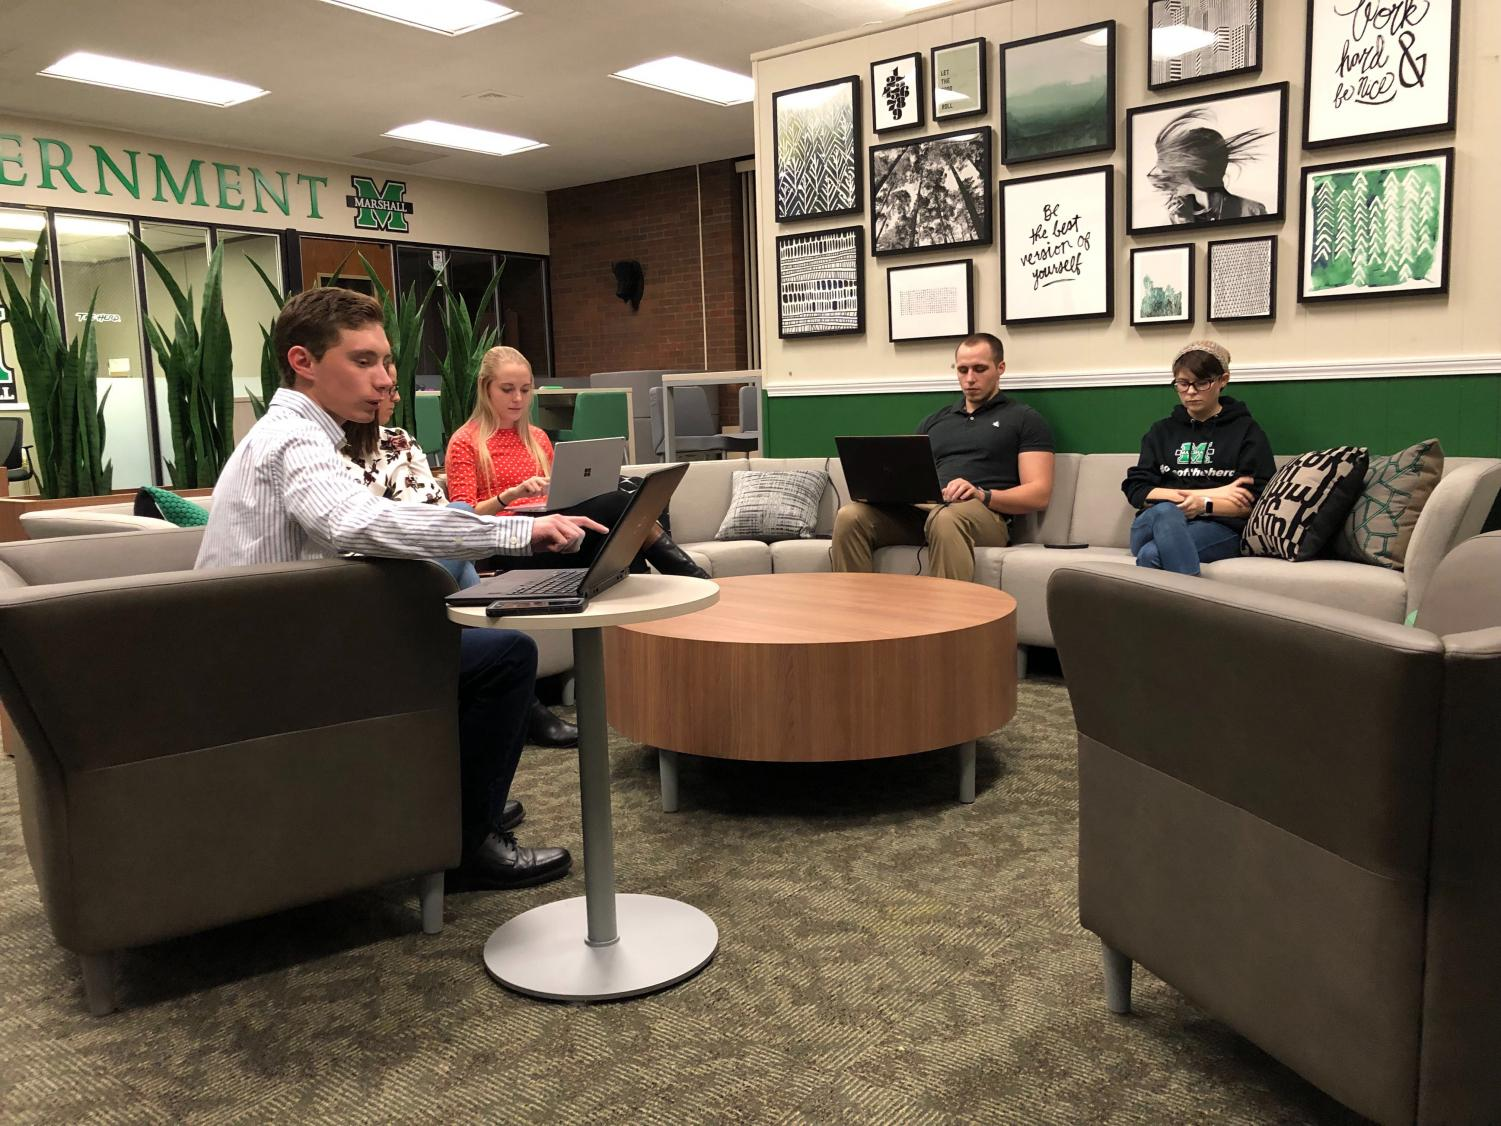 Members of Marshall's student body cabinet discussed textbook affordability for students and the possible addition of a TEDx event for students and faculty in the future.